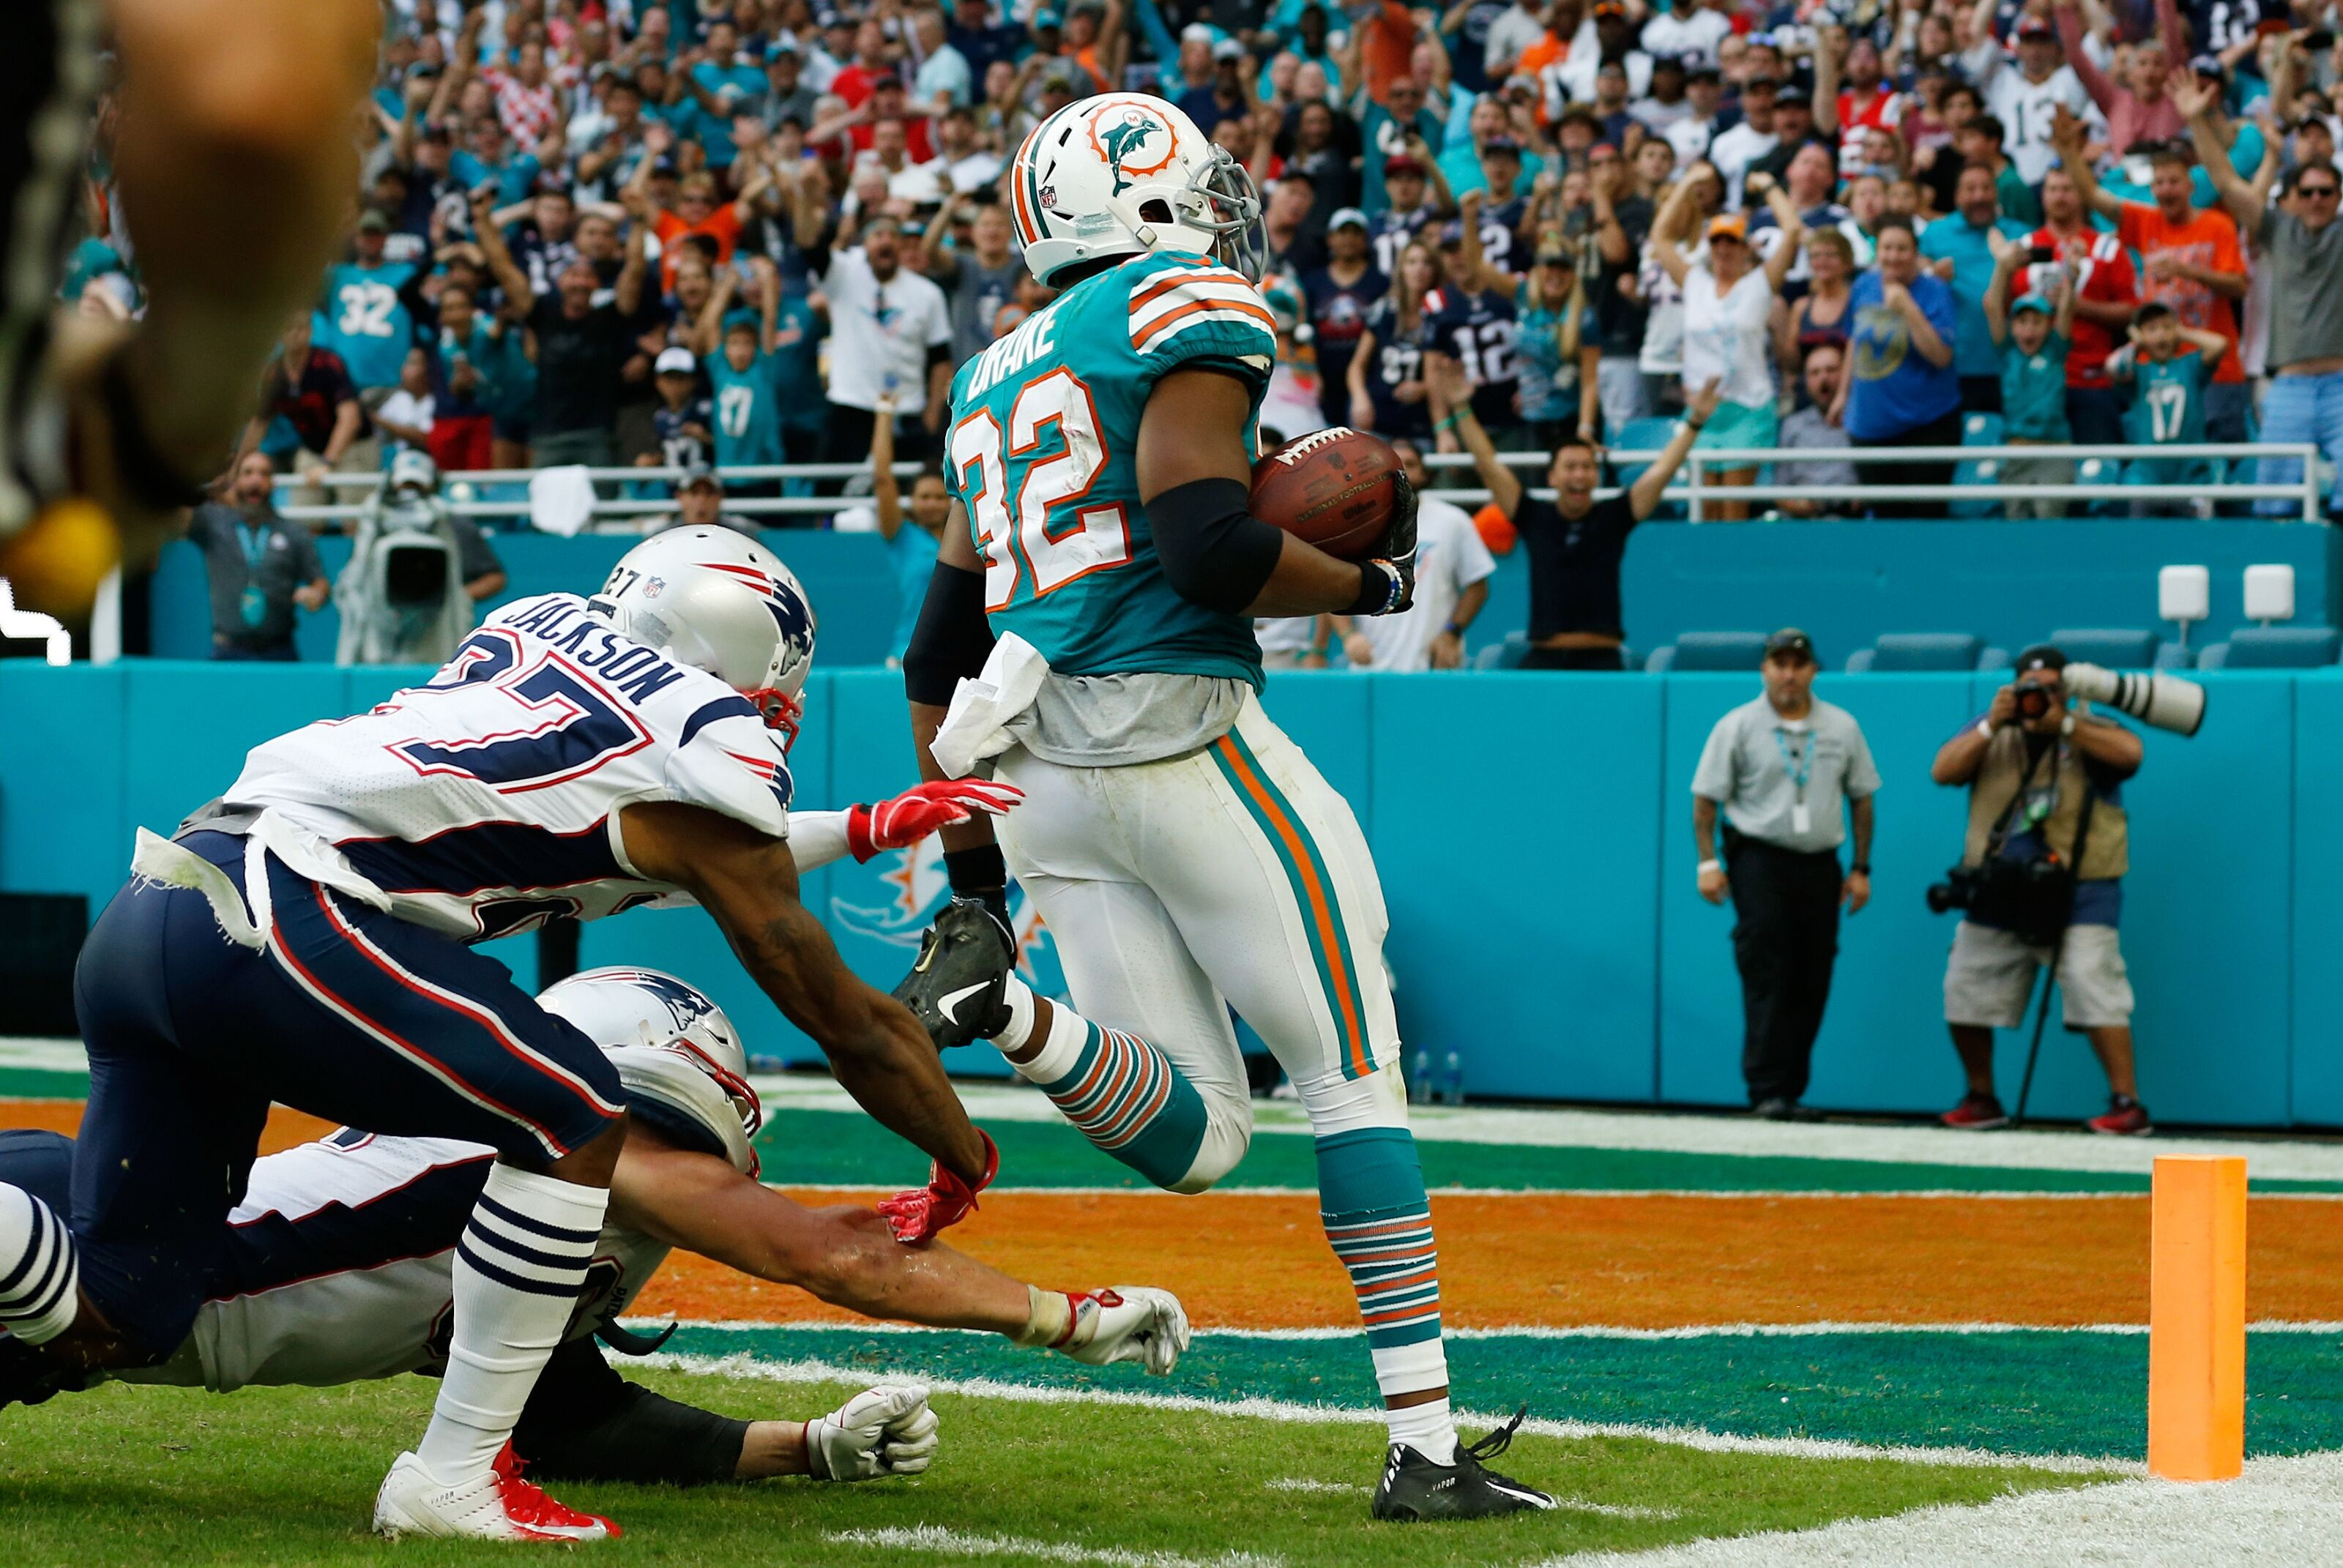 New England Patriots: Why the loss in Miami could be crippling